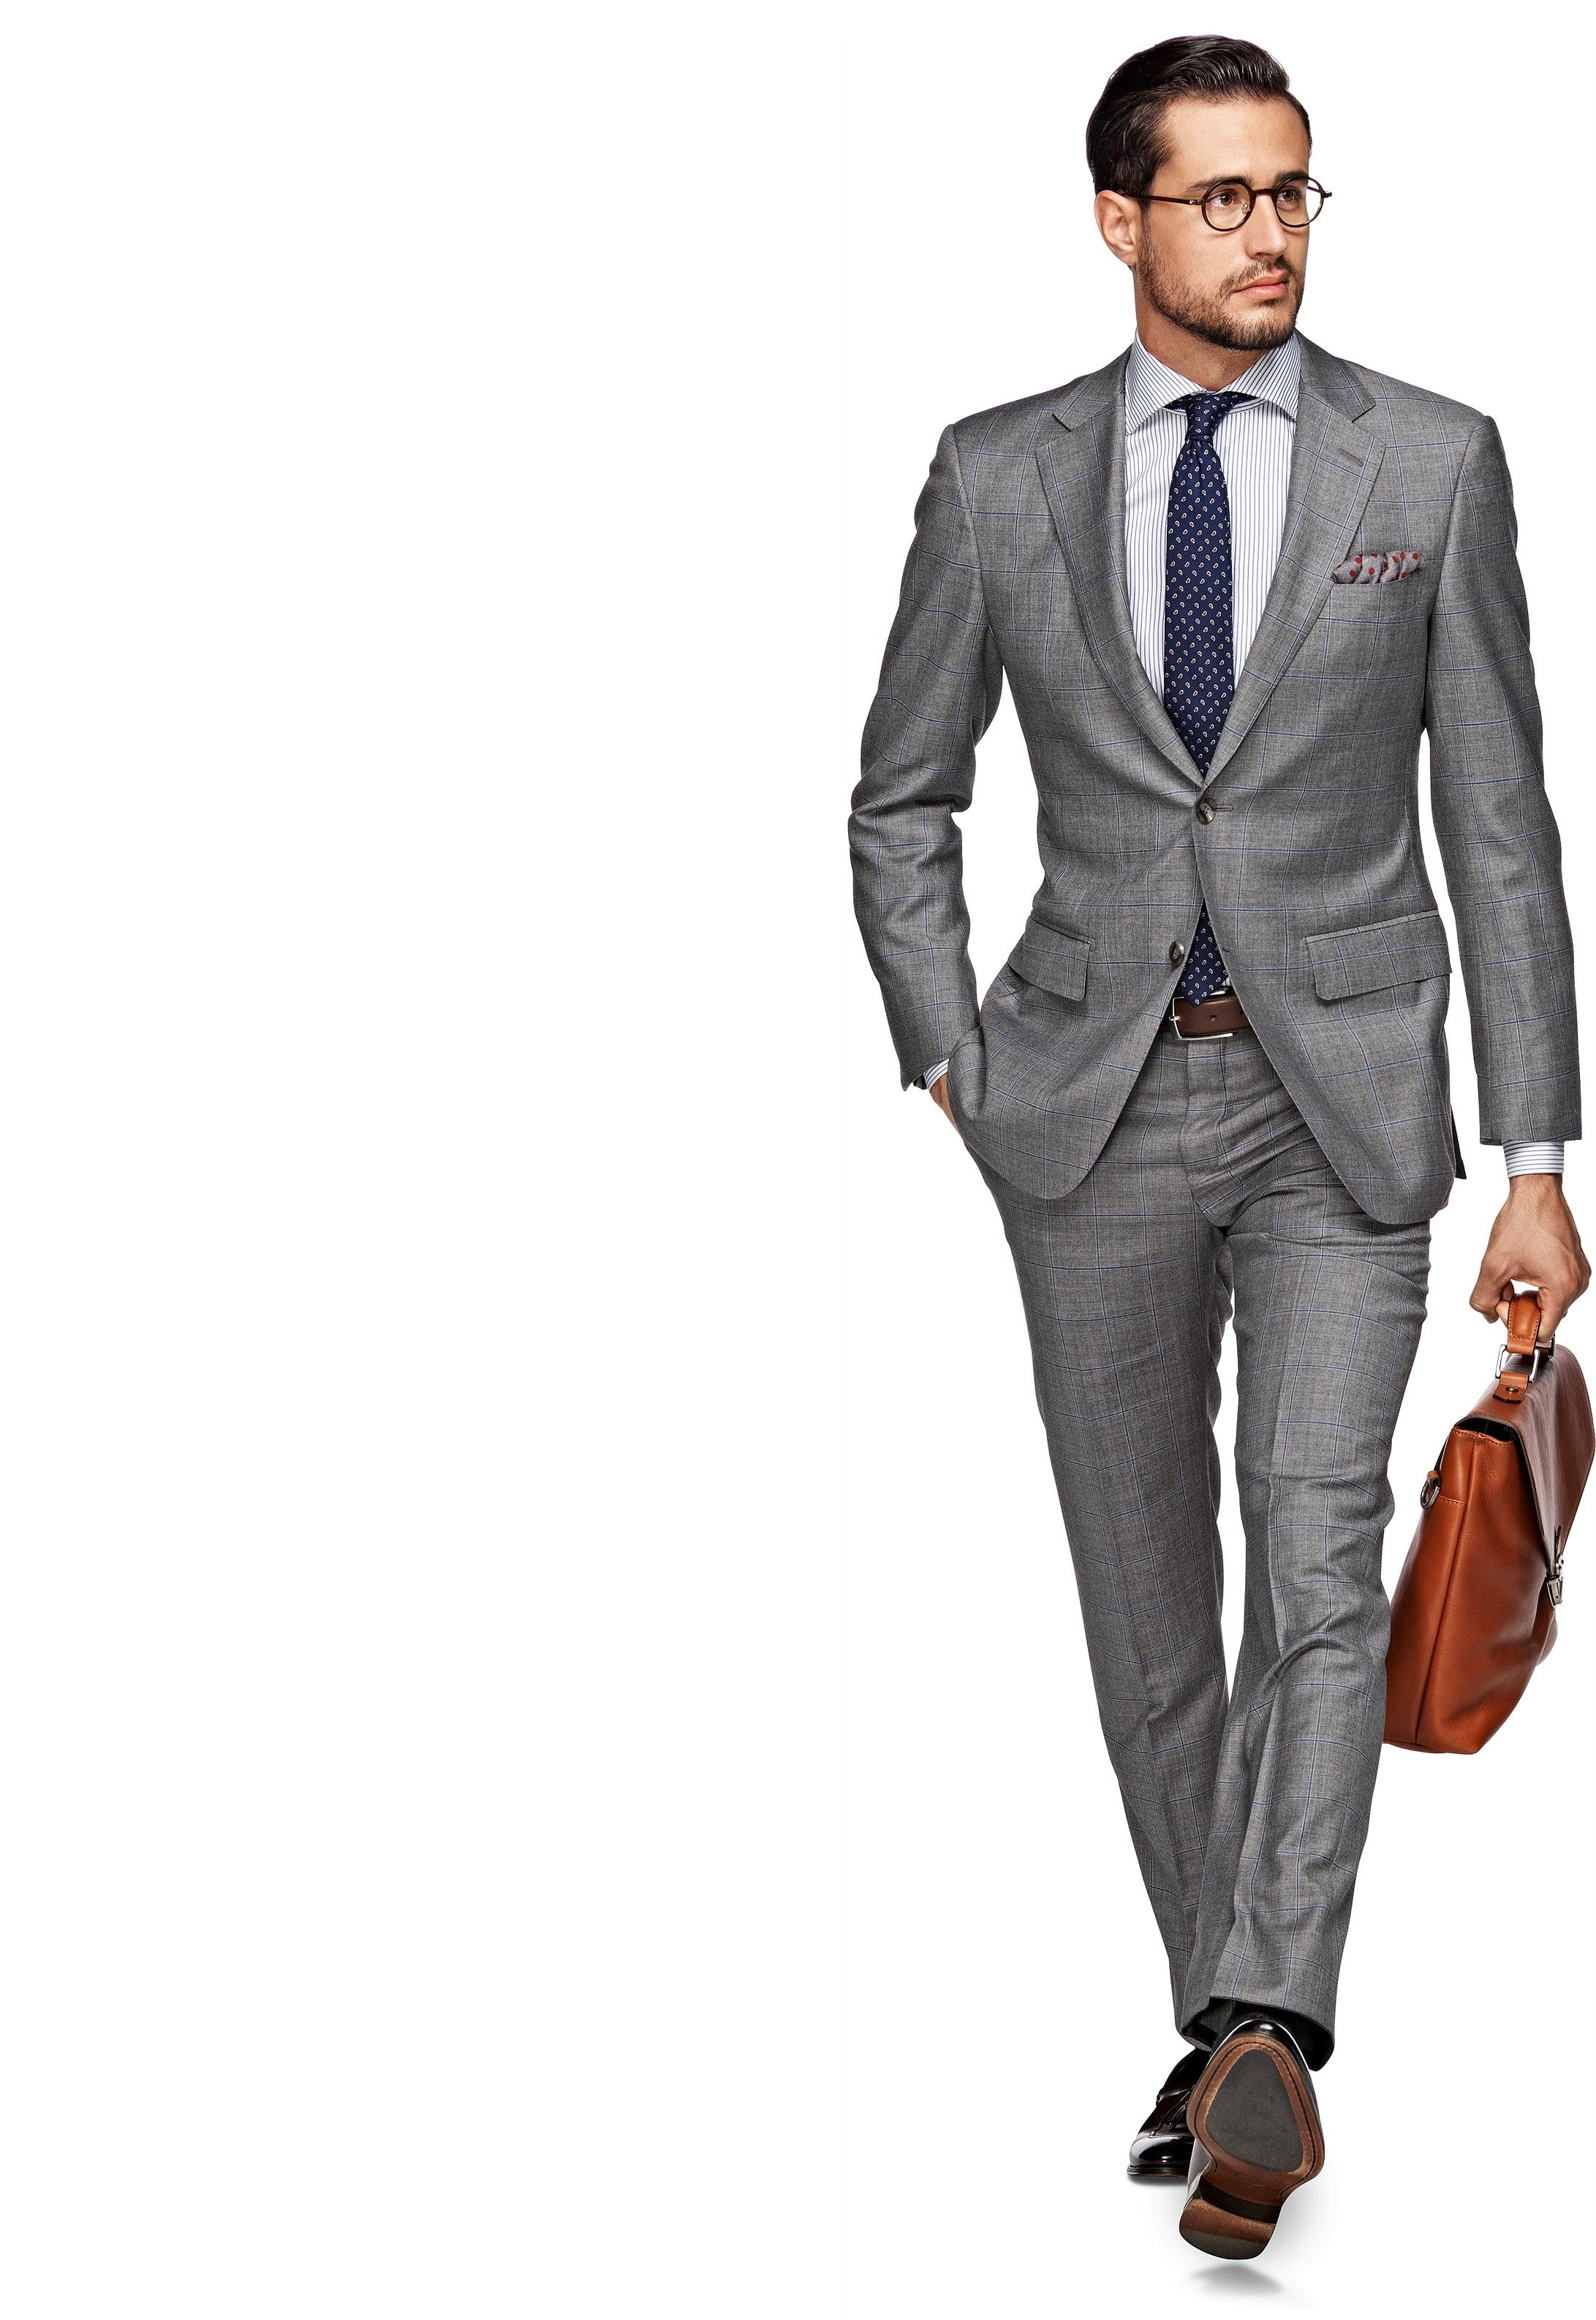 Every man needs a grey suit. Suit Light Grey Check Napoli P3432 ...